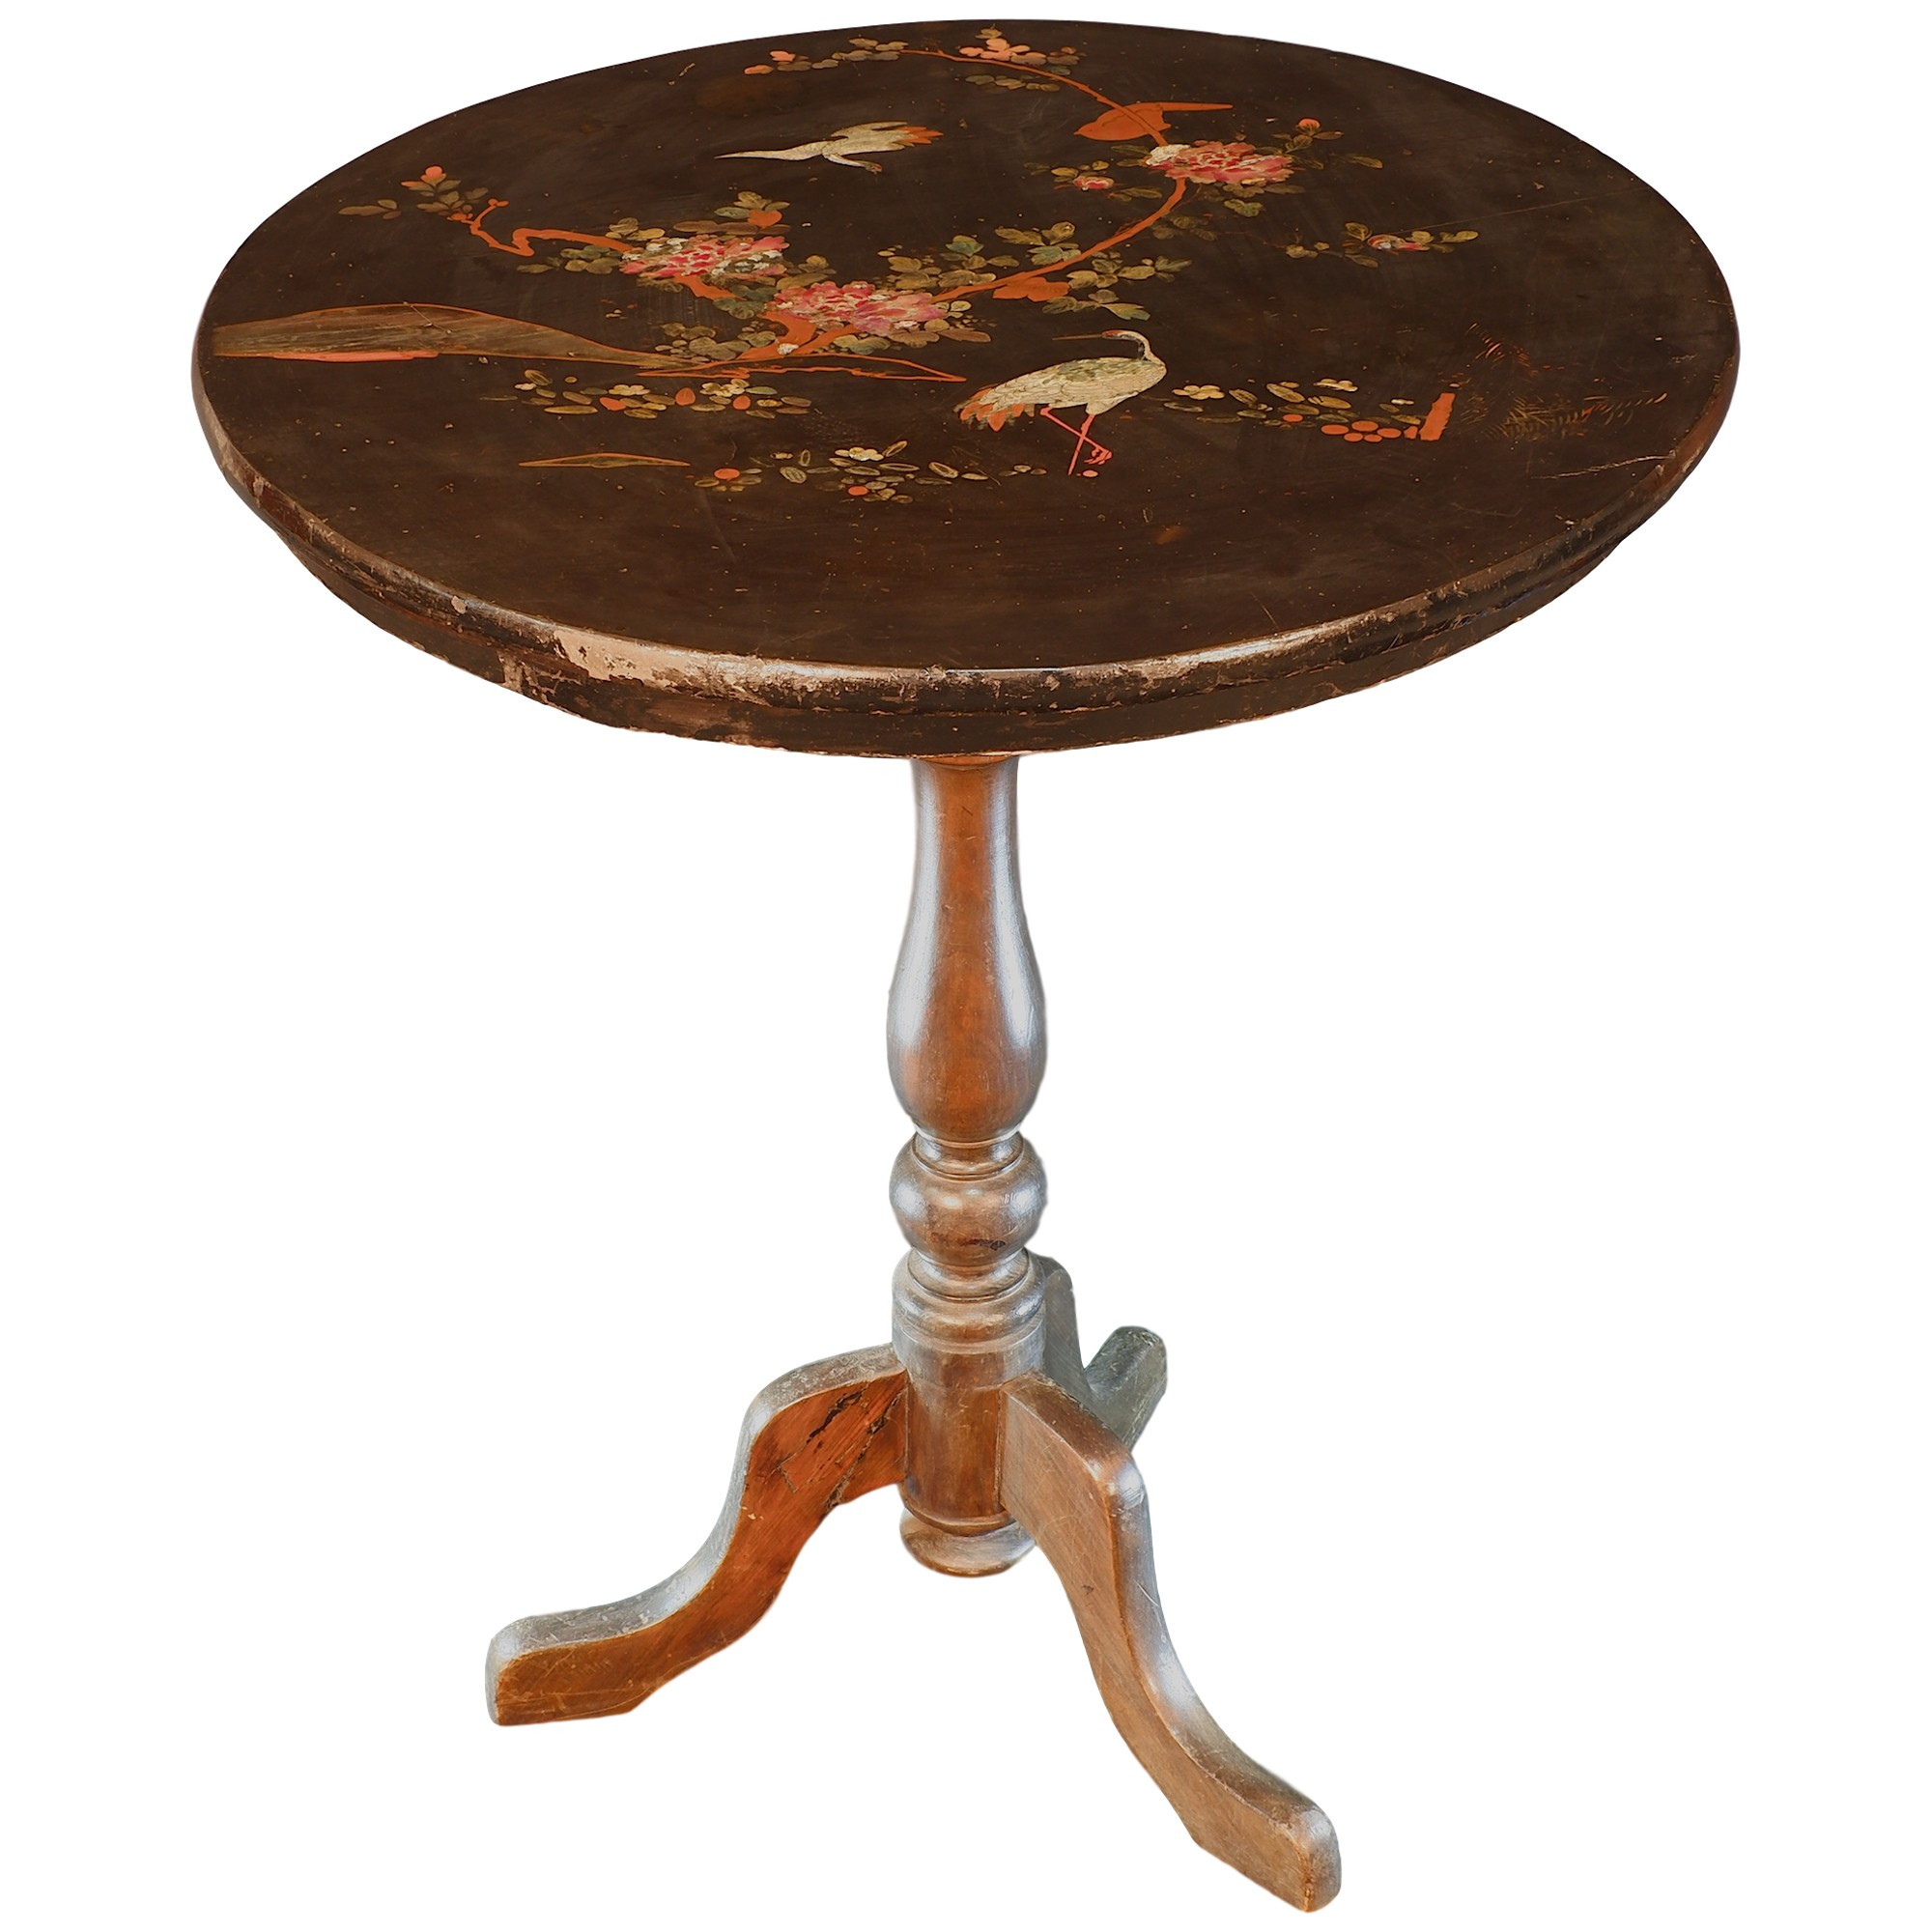 'Antique Chinoiserie Style Tripod Wine Table with Lacquer Decorated and Pearl Shell Inlaid Top, Late 19th Century'